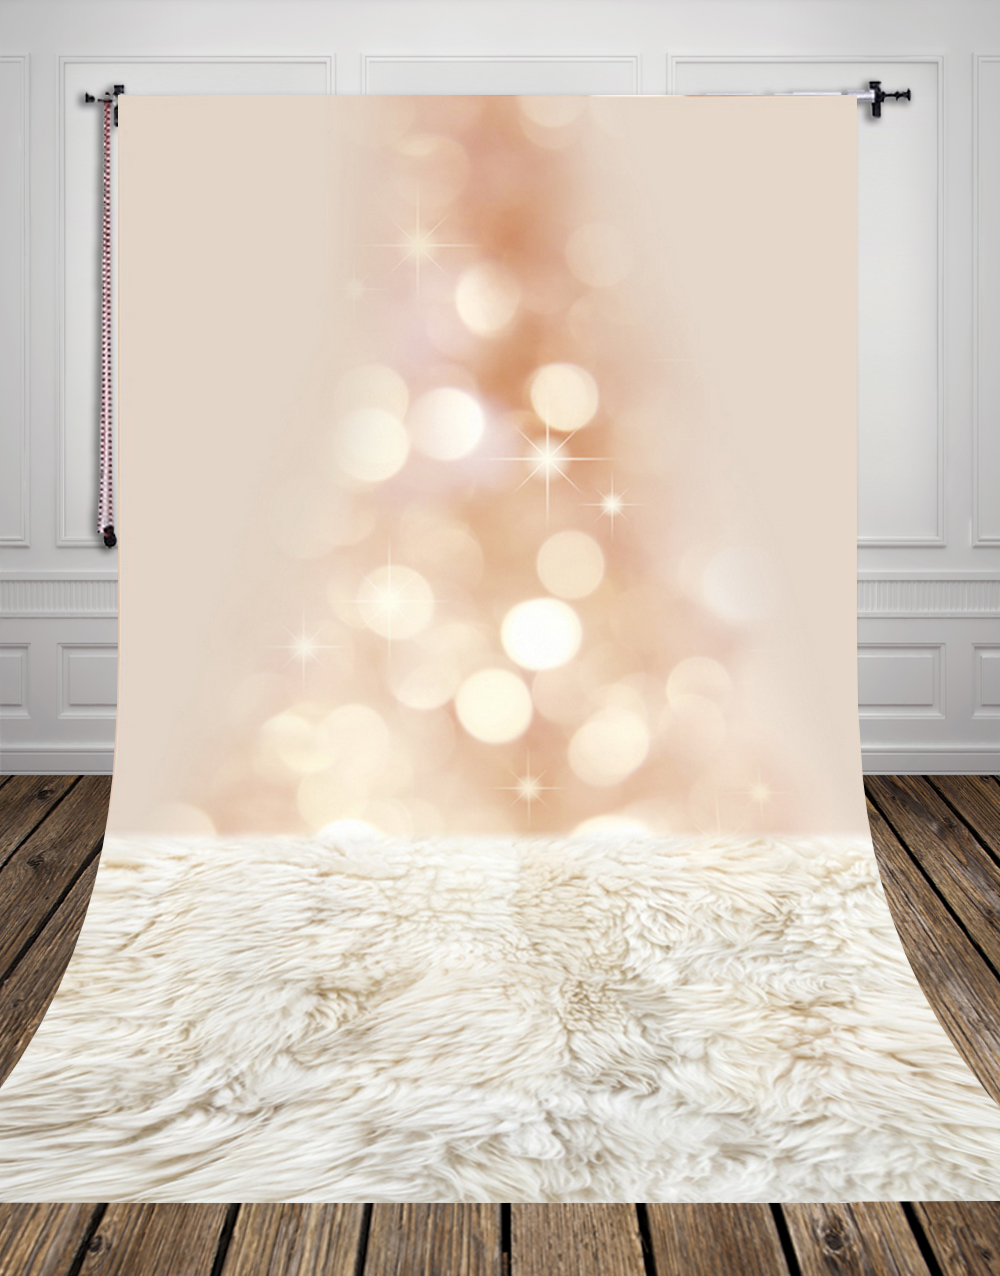 5x10ft(1.5x3m) studio photo background backdrop made of Art fabric printed with fur floor and bokeh for newborn picture D-9715